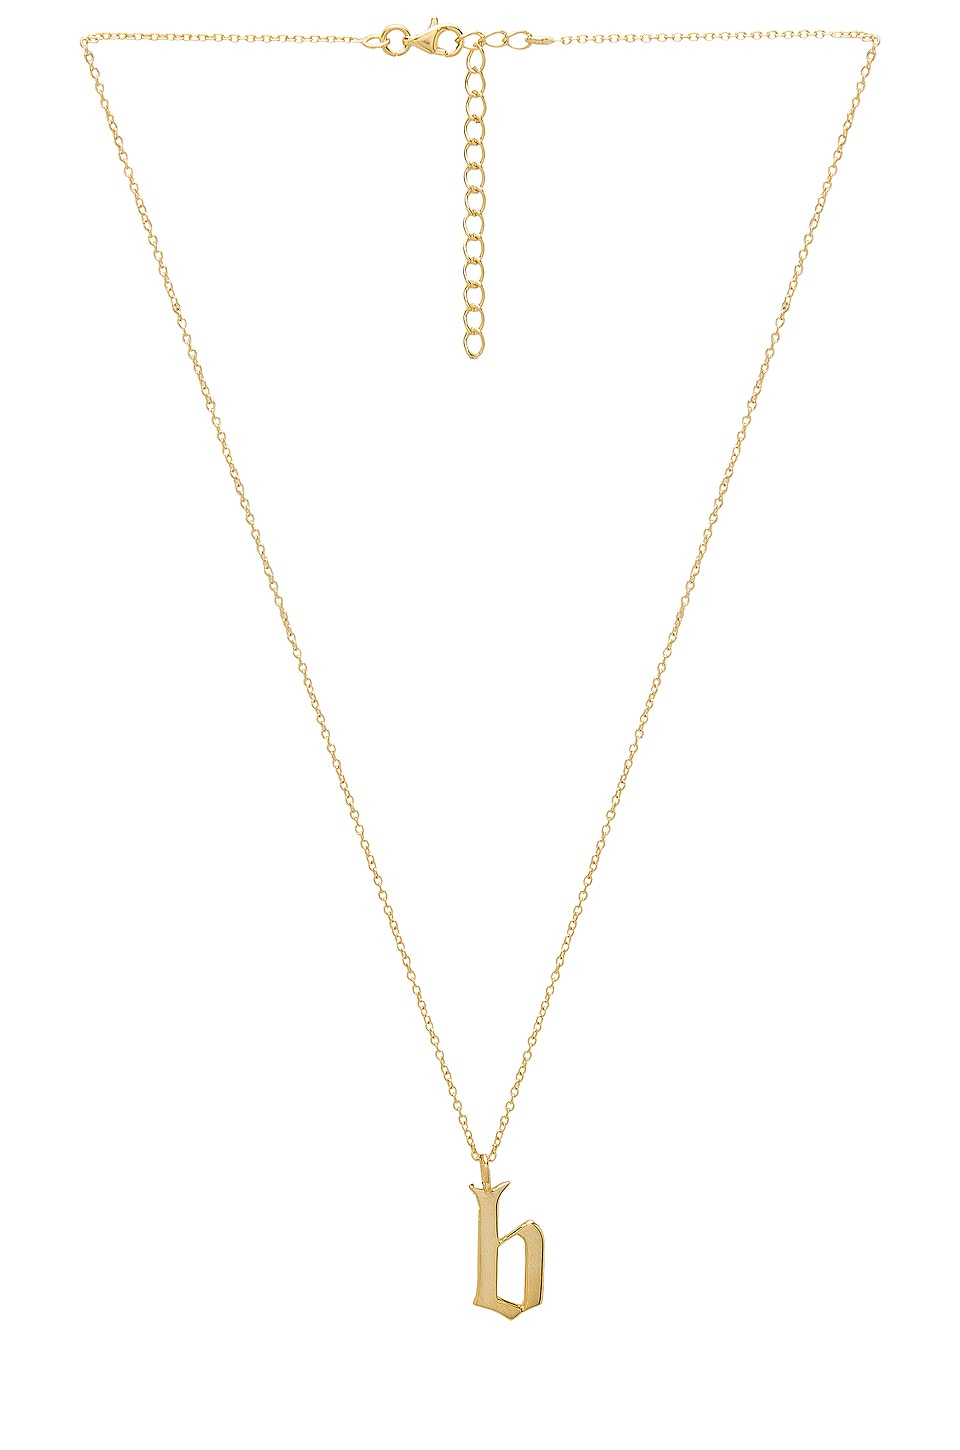 The M Jewelers NY The Old English B Pendant in Gold